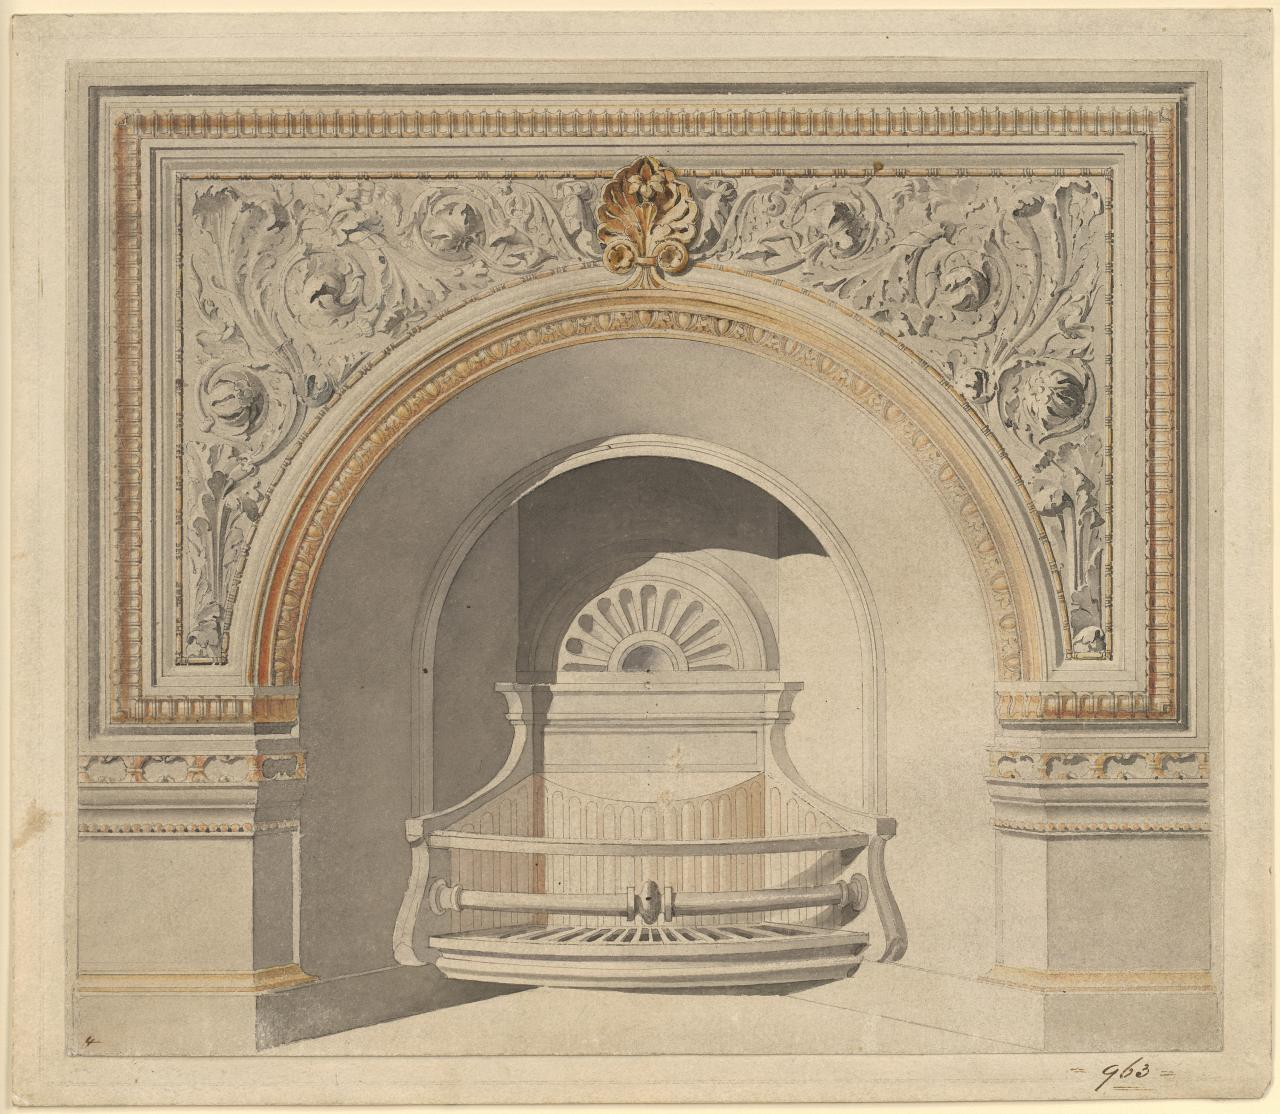 Fireplace design No 963